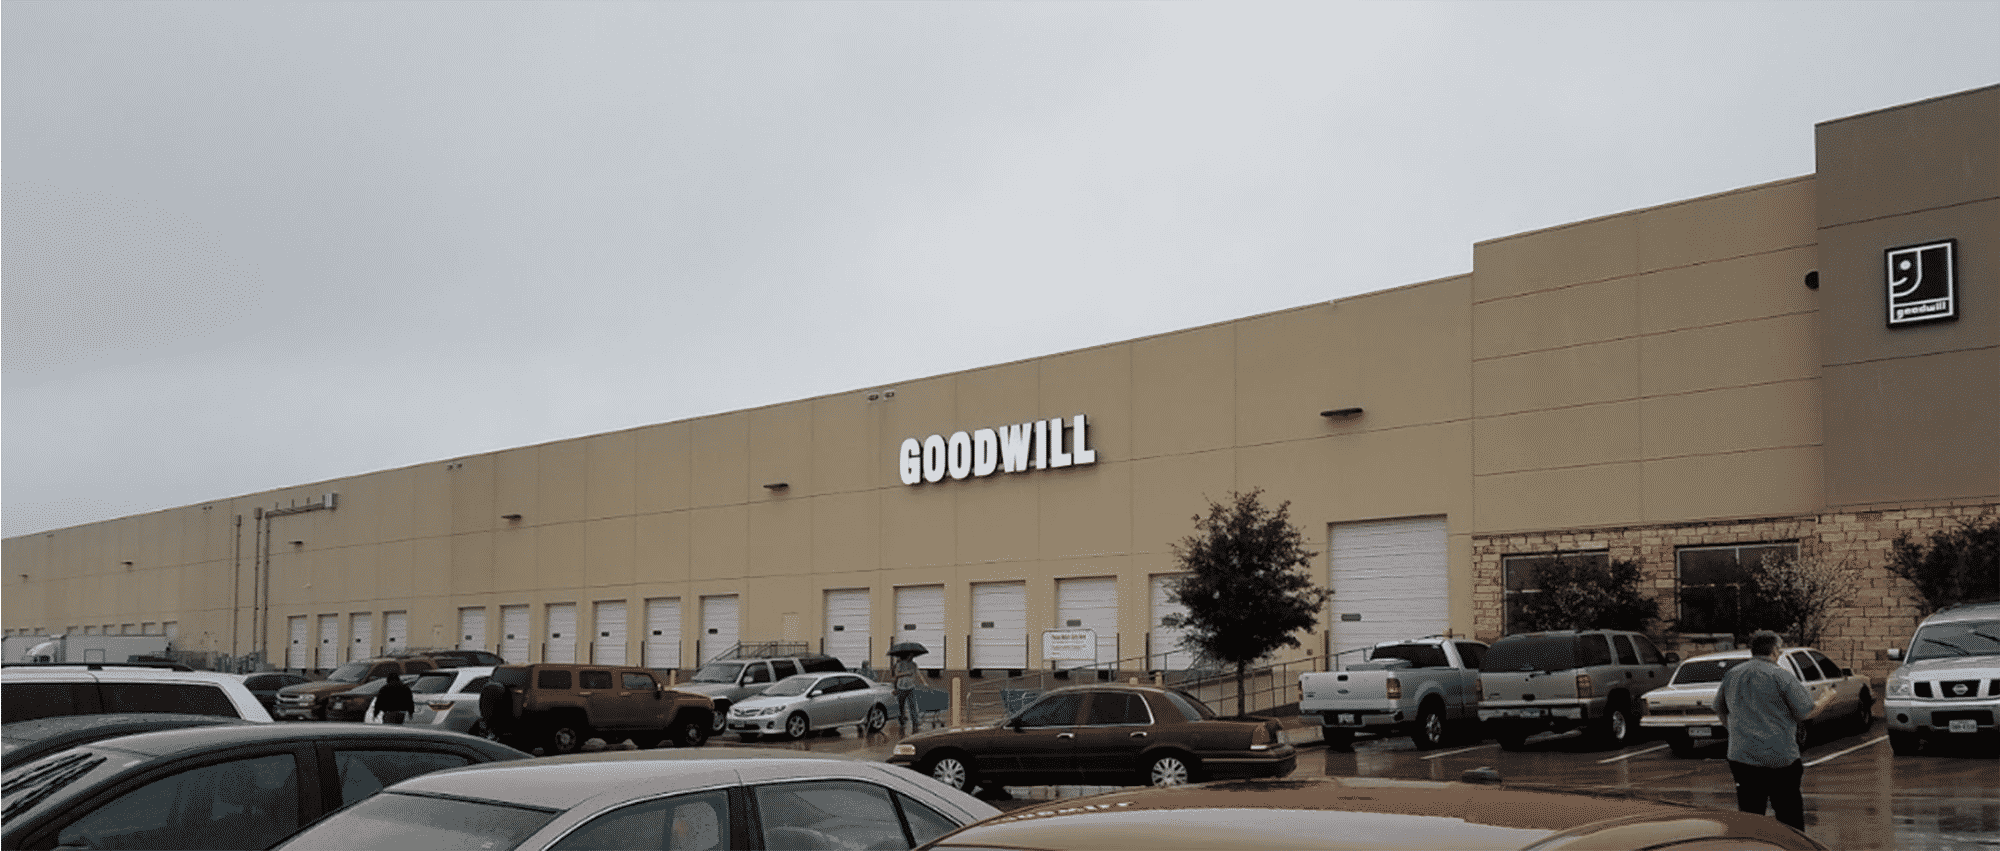 Goodwill North Austin Outlet Exterior